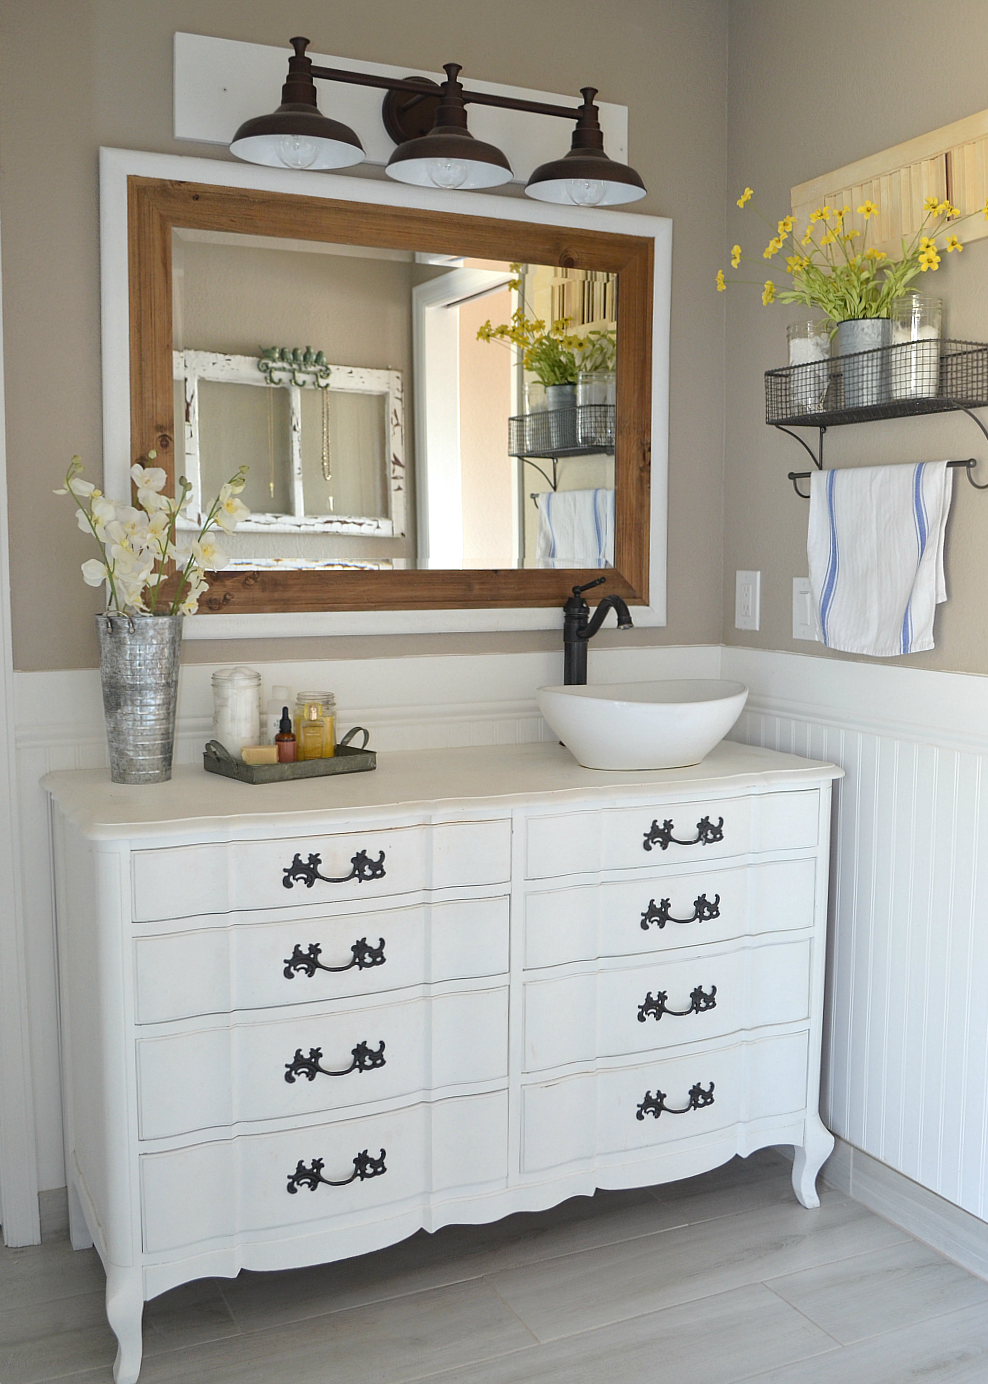 a modern farmhouse bathroom an honest review of chalk painted bathroom vanities - Farmhouse Bathroom Vanity